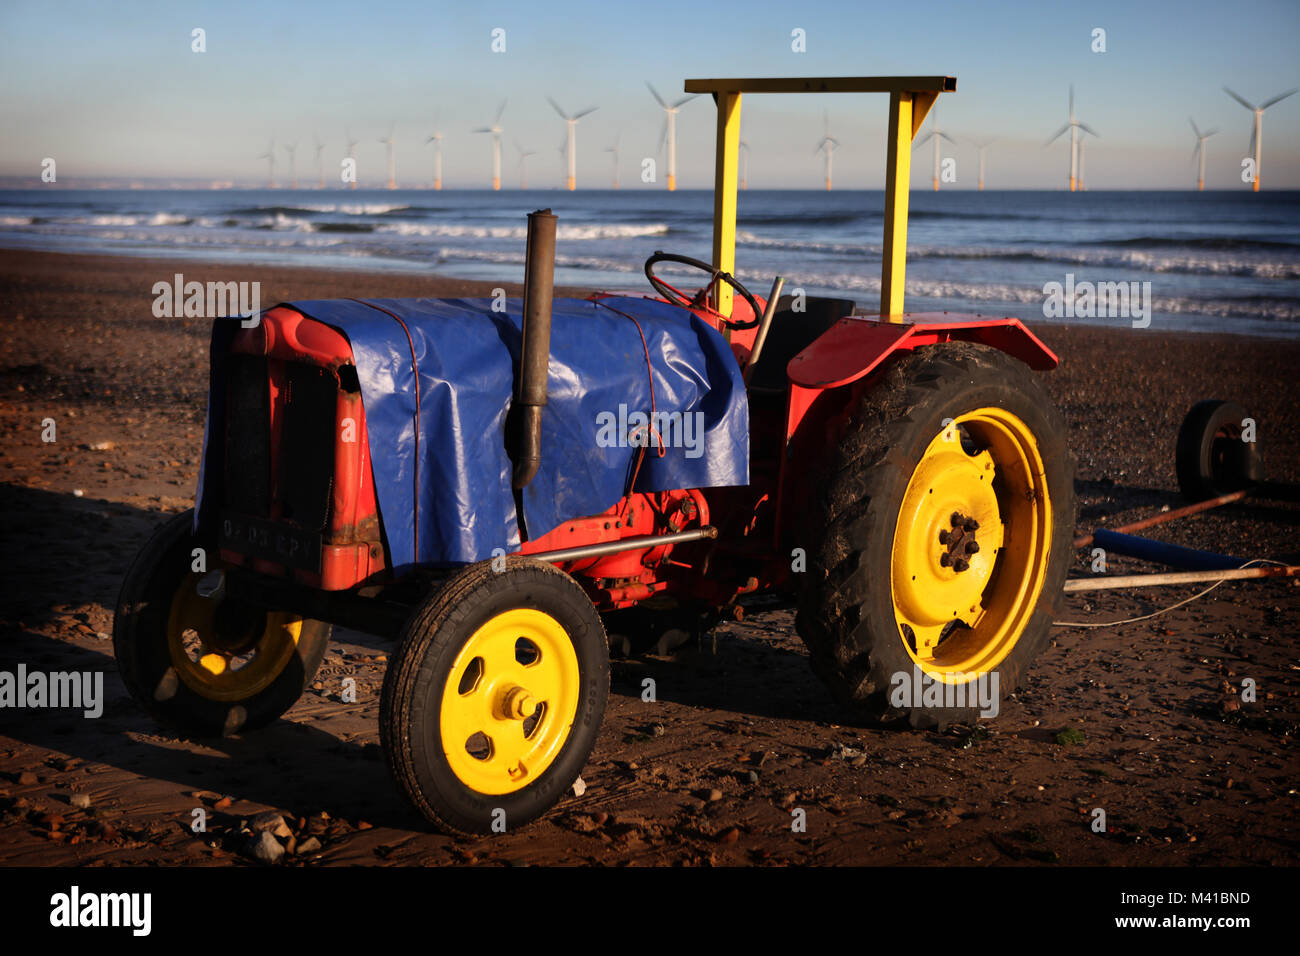 Sea-going tractors wrapped up against the elements in Redcar, Cleveland, England, Britain Stock Photo